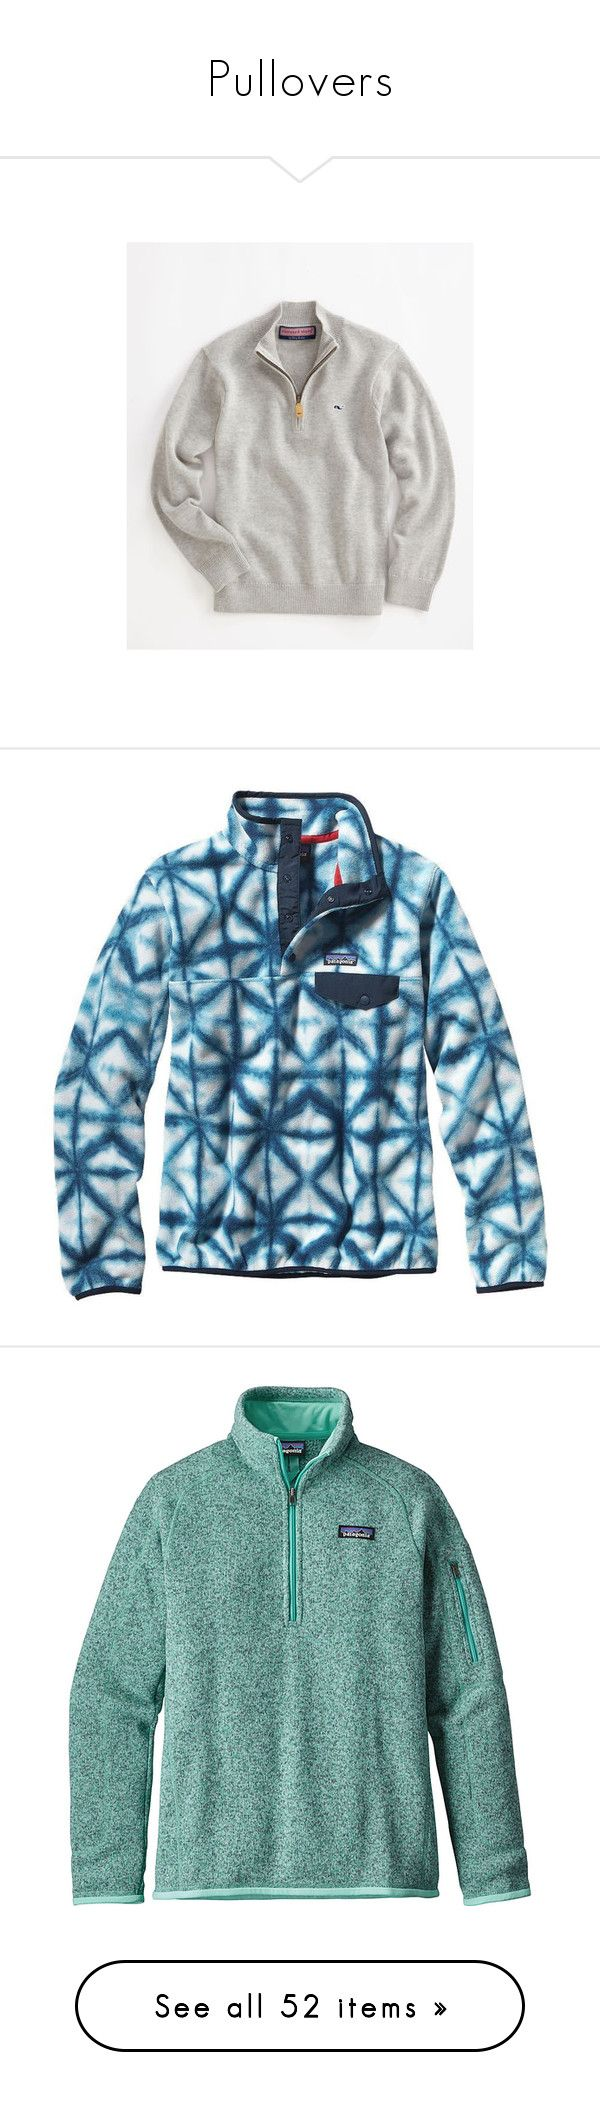 """""""Pullovers"""" by bowhunter1498702 ❤ liked on Polyvore featuring tops, sweaters, jackets, pullovers, shirts, patagonia, navy blue, blue pullover sweater, patagonia sweater and lightweight fleece pullover"""